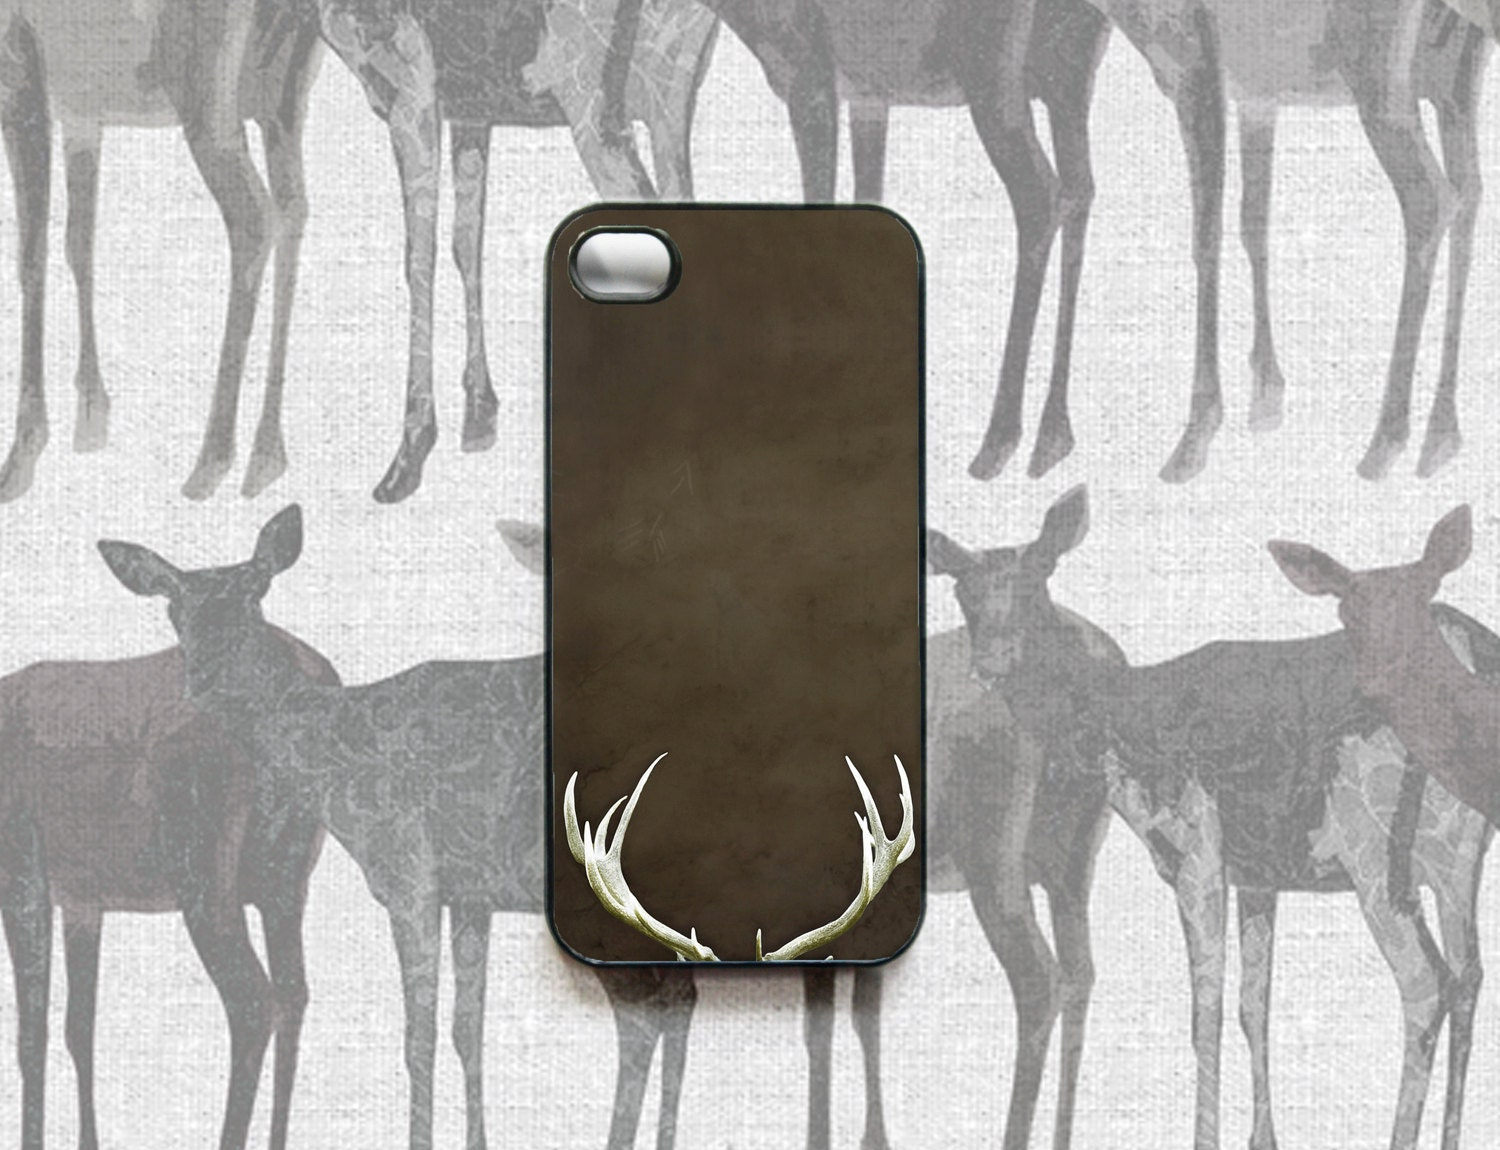 Cell phone, phone case - antlers case for your iPhone 4 - cell phone accessory - tribal outdoors deer men (In Stock) - Raceytay